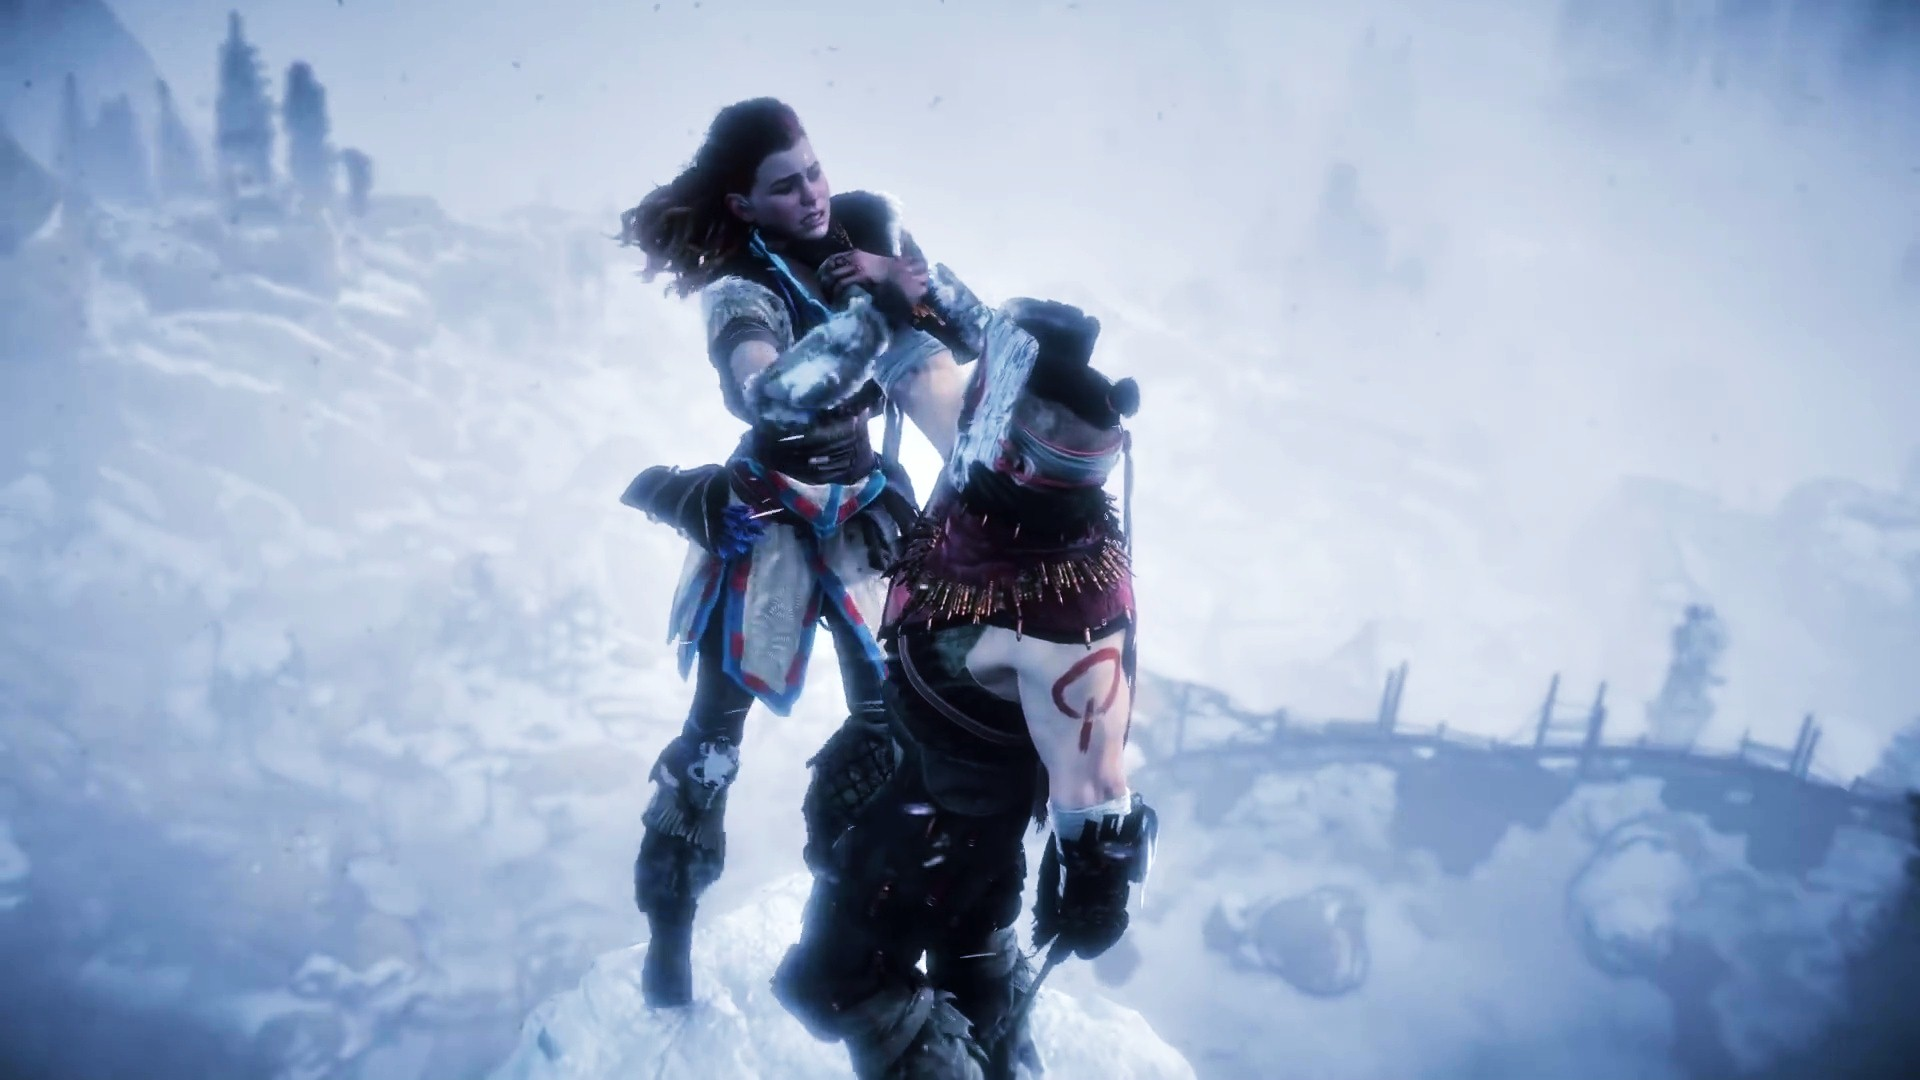 Horizon Zero Dawn Fighting Wallpaper 00527   Baltana Original Resolution